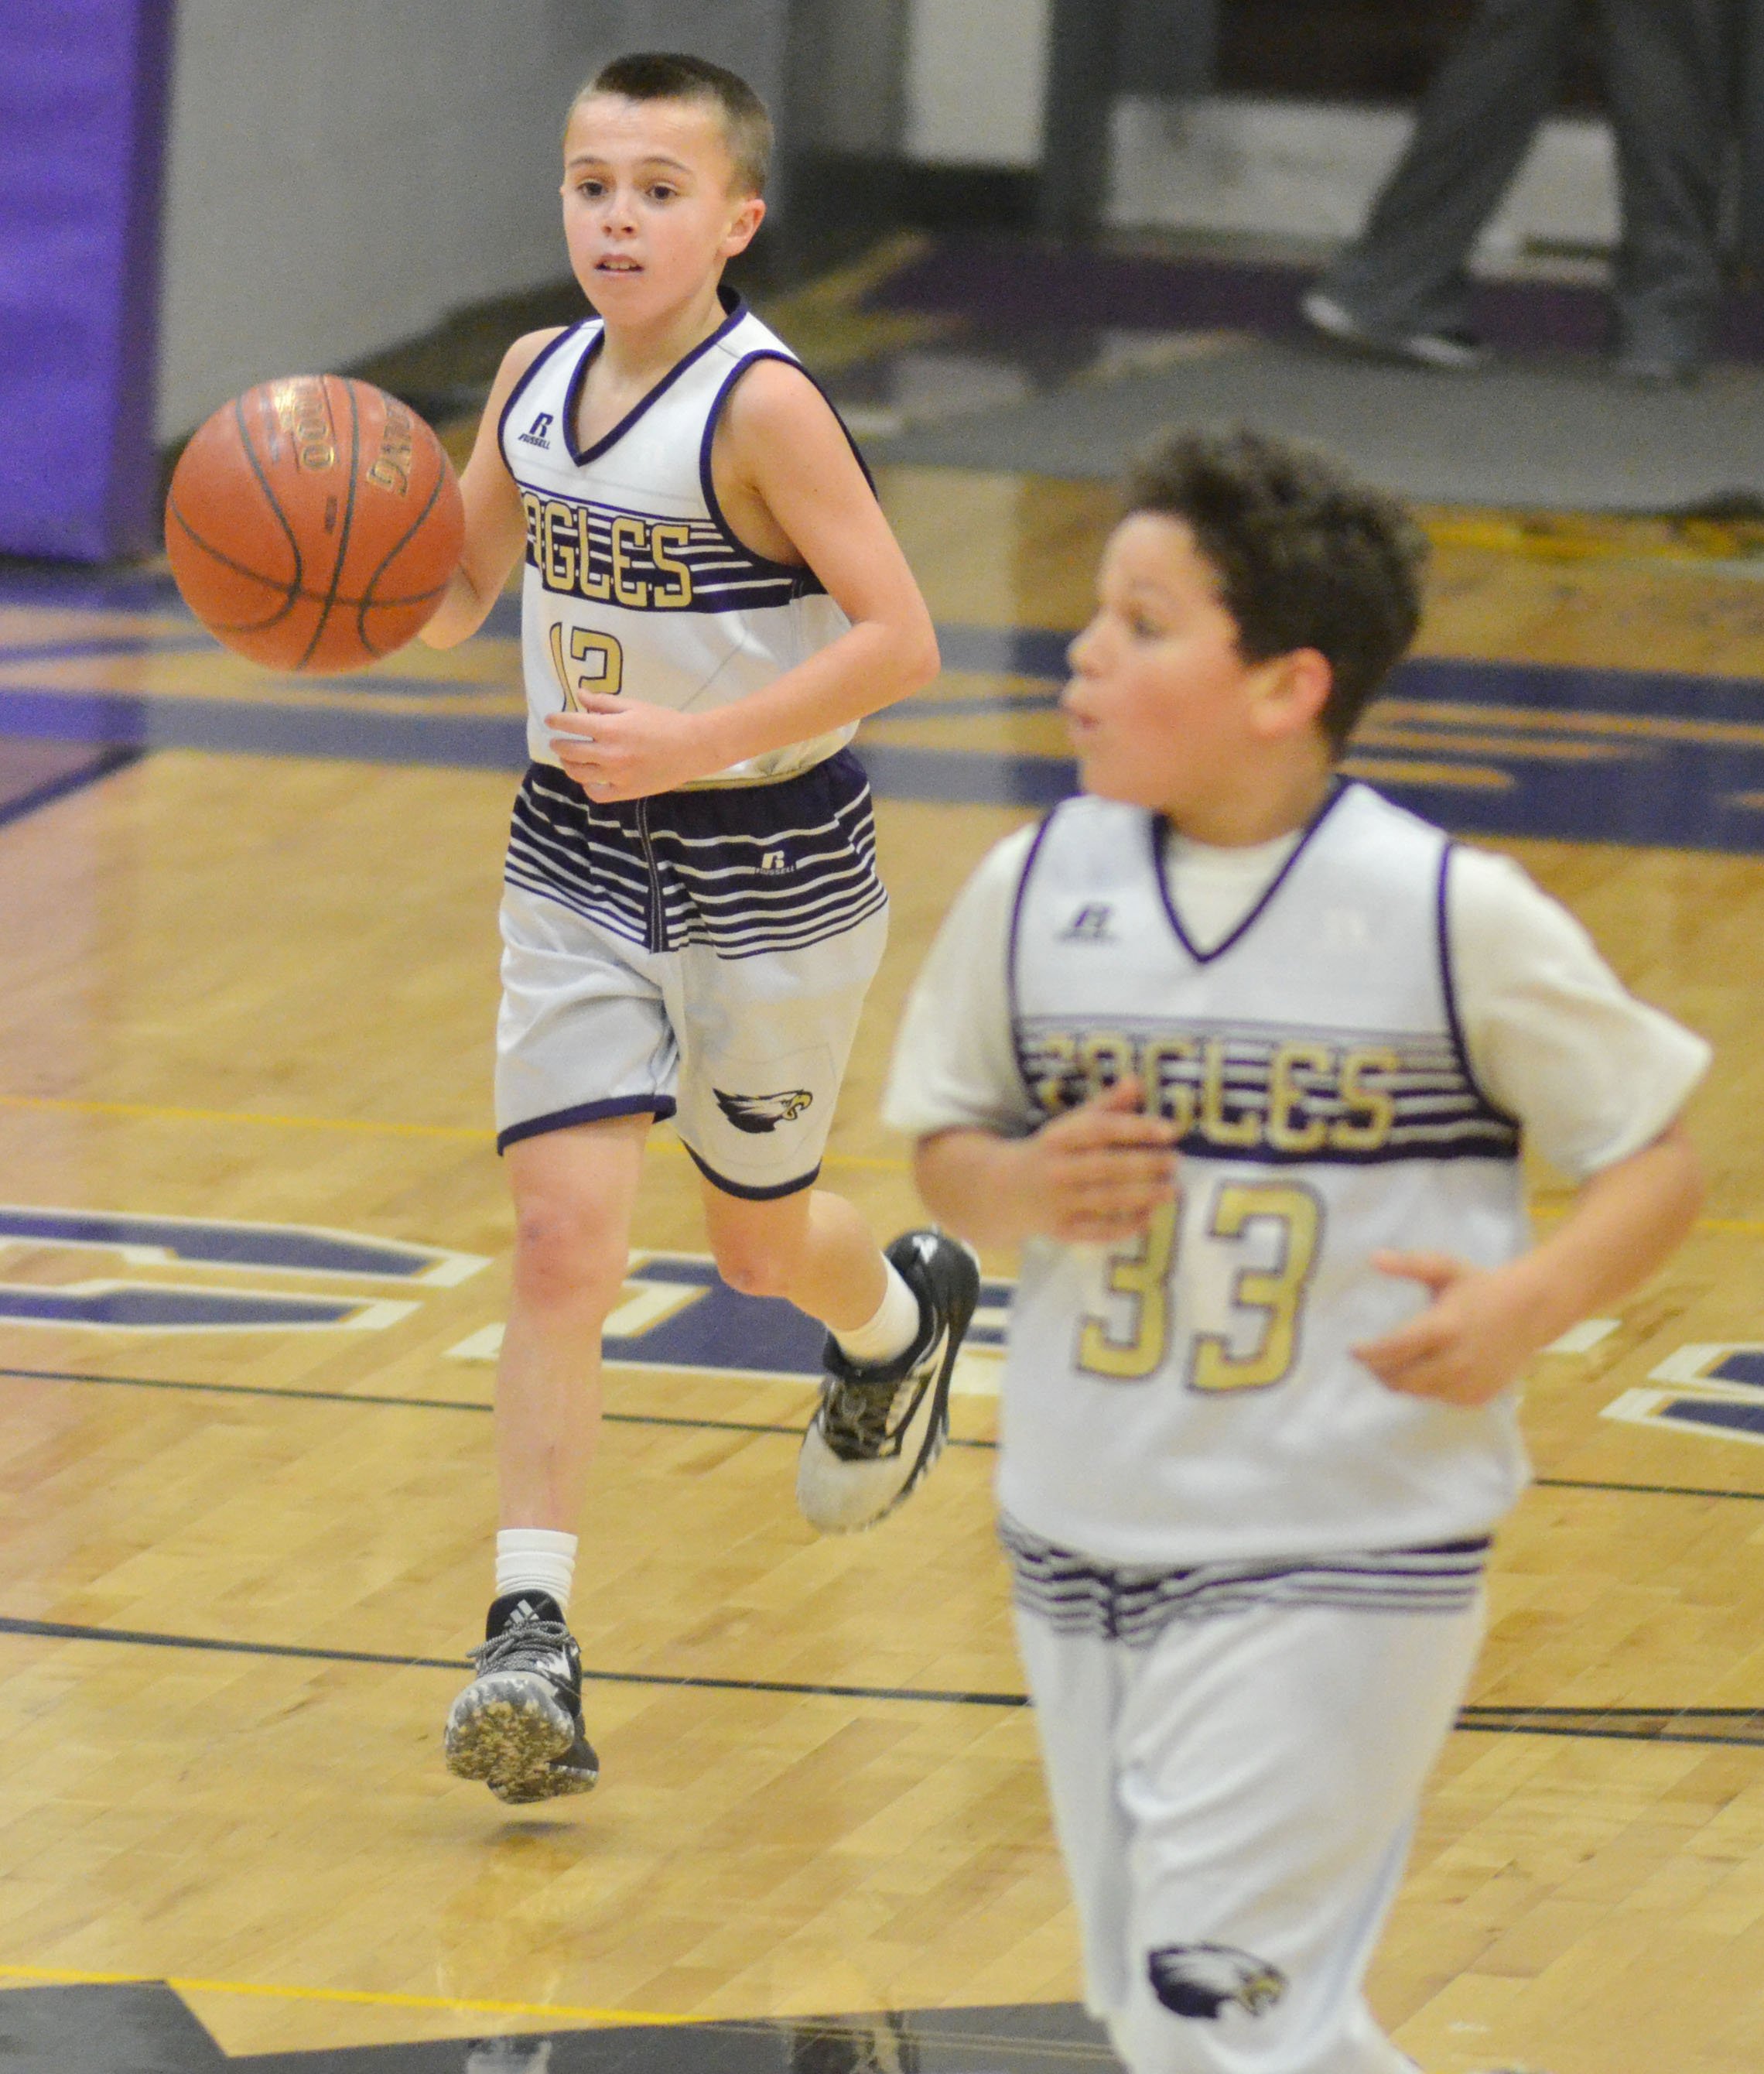 CMS sixth-grader Chase Hord dribbles down the court.